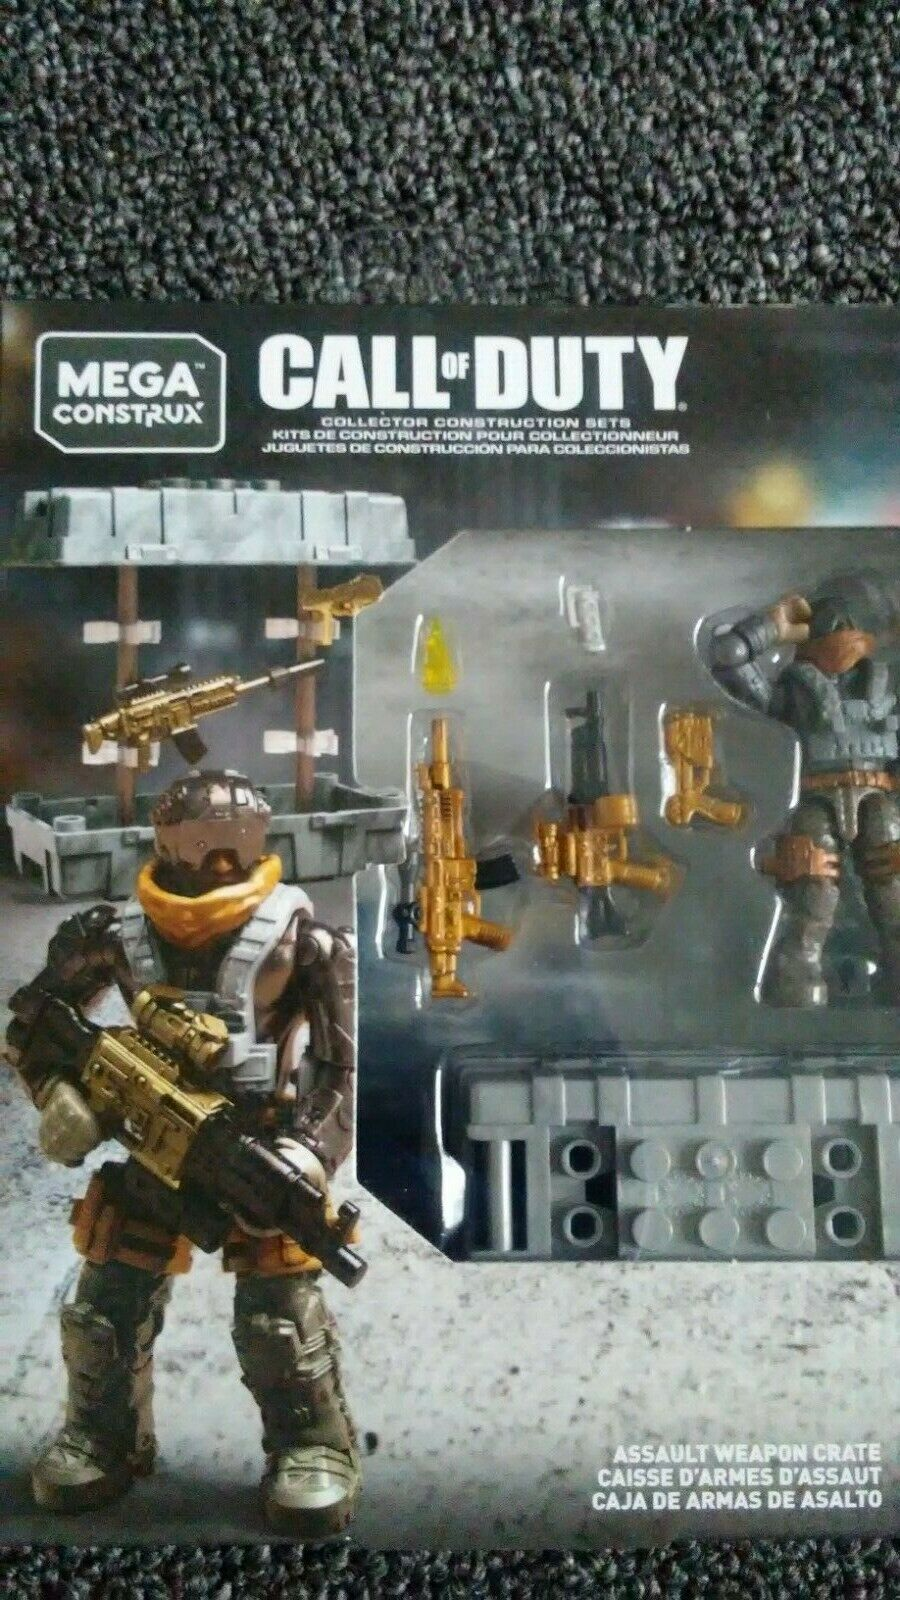 FVF99 43 Pieces Mega Construx Call of Duty ASSAULT WEAPON CRATE